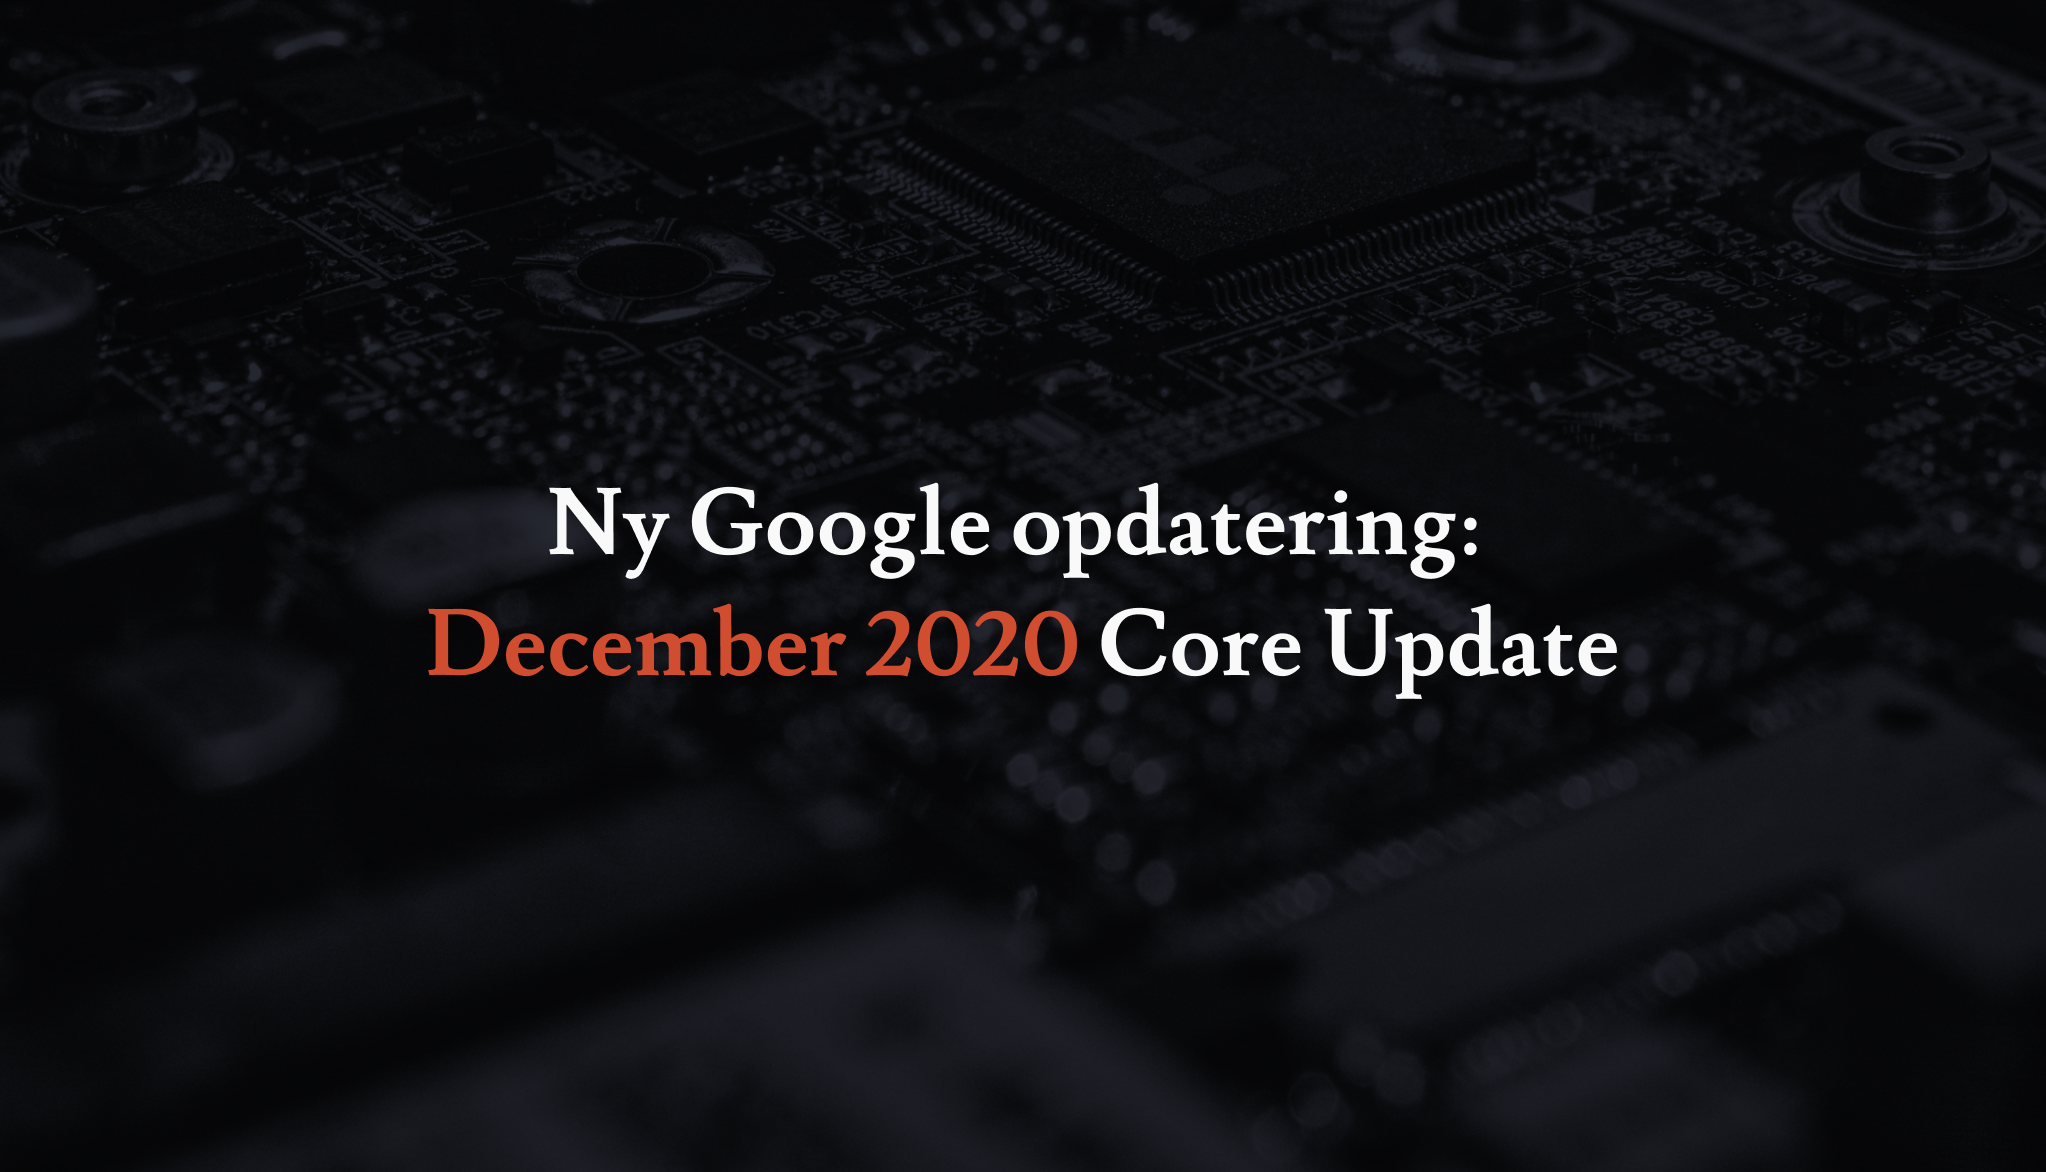 Ny Google opdatering: December 2020 Core Update